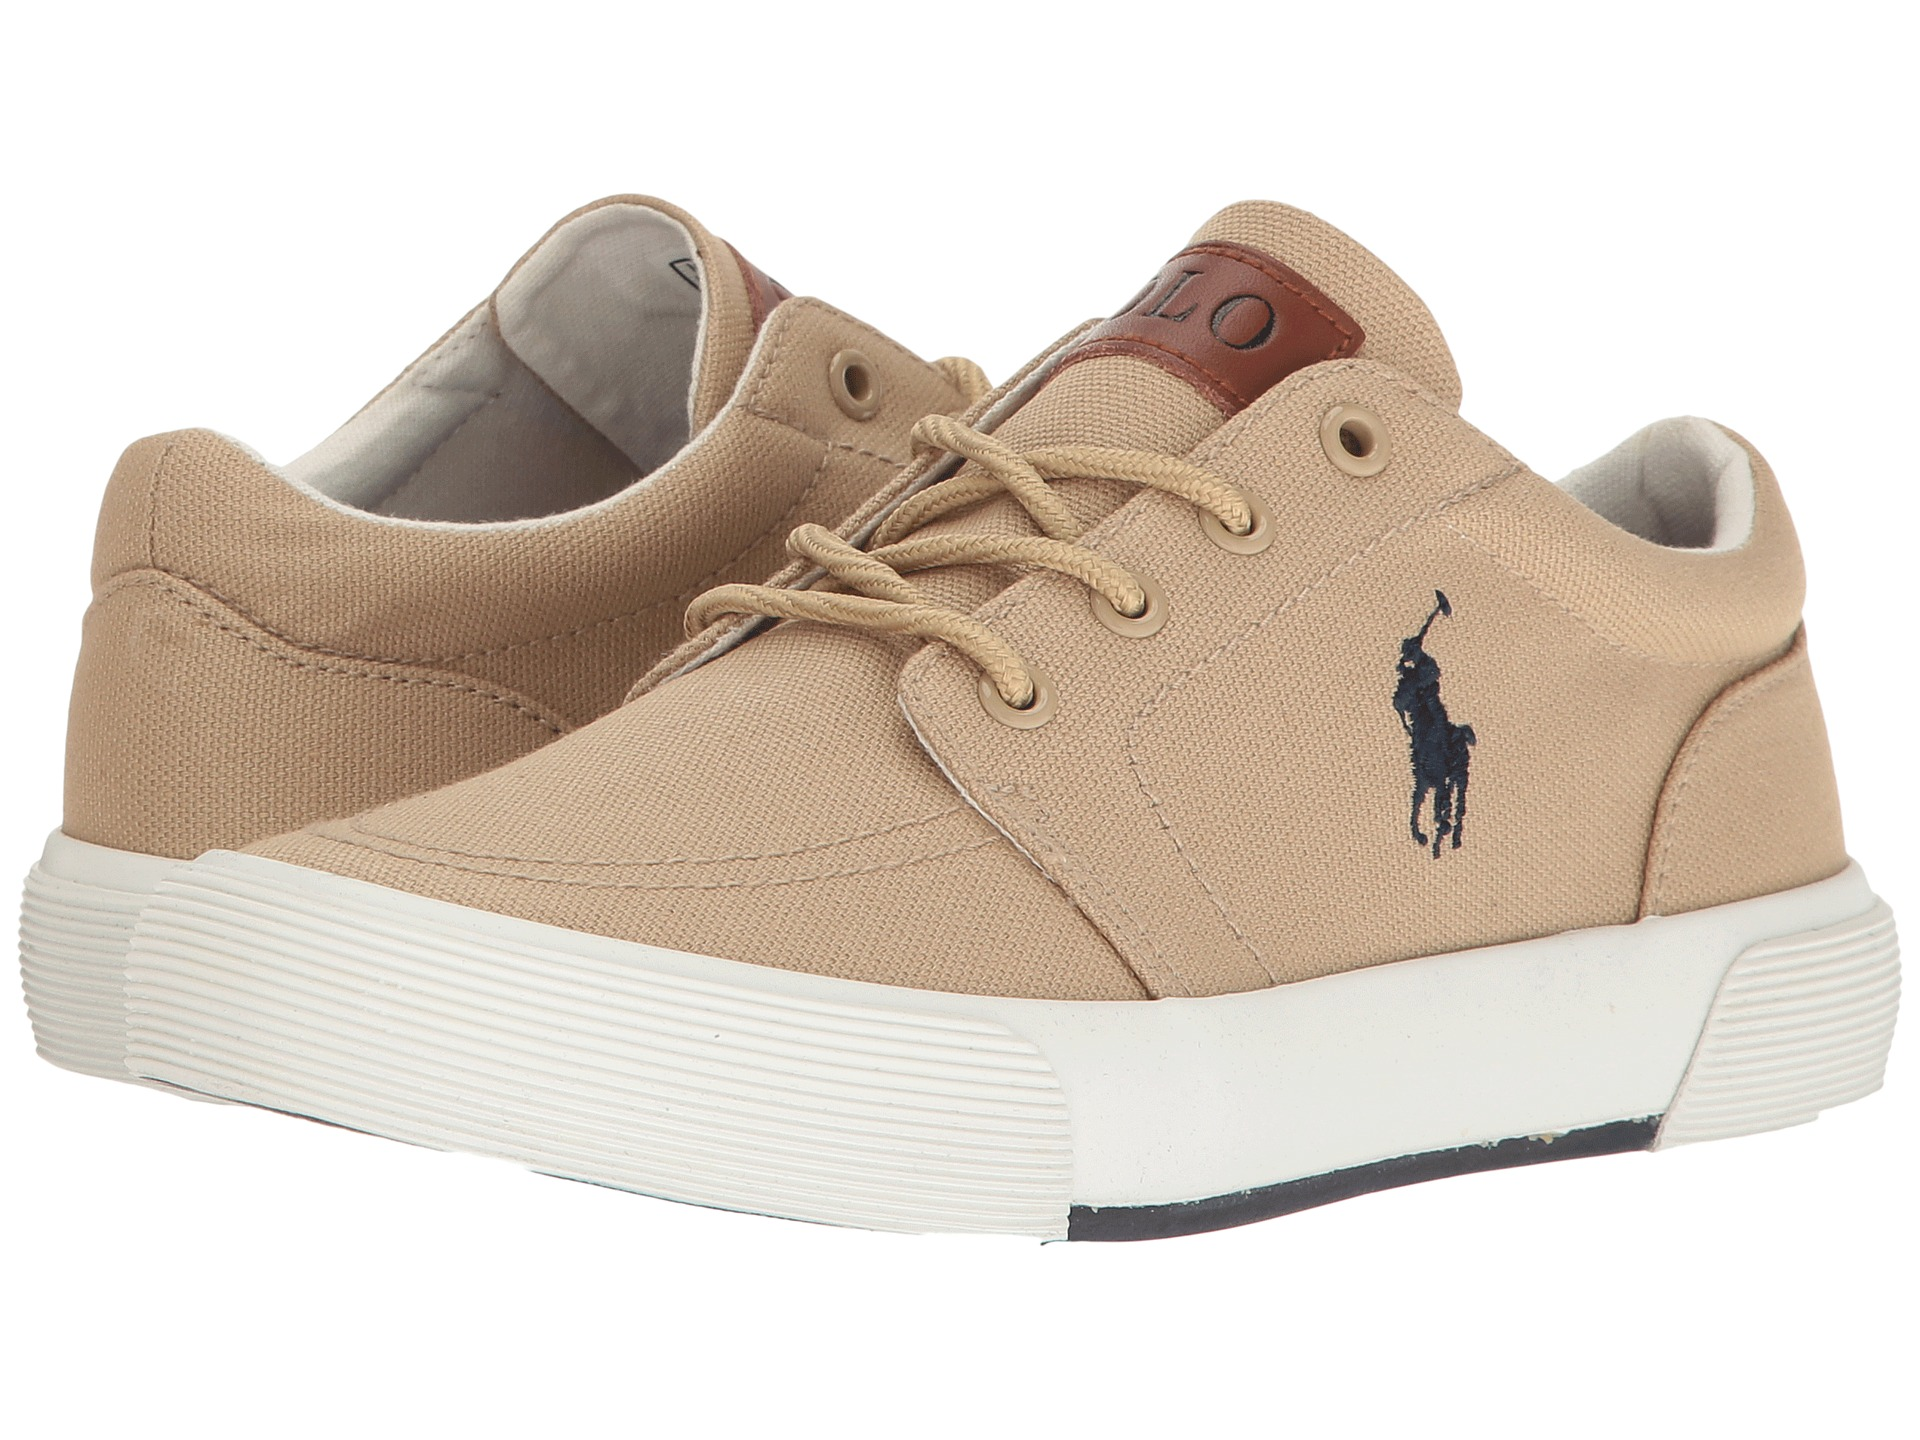 Discover the latest styles of kids' Polo by Ralph Lauren shoes and boots at Famous Footwear! Find your fit today!